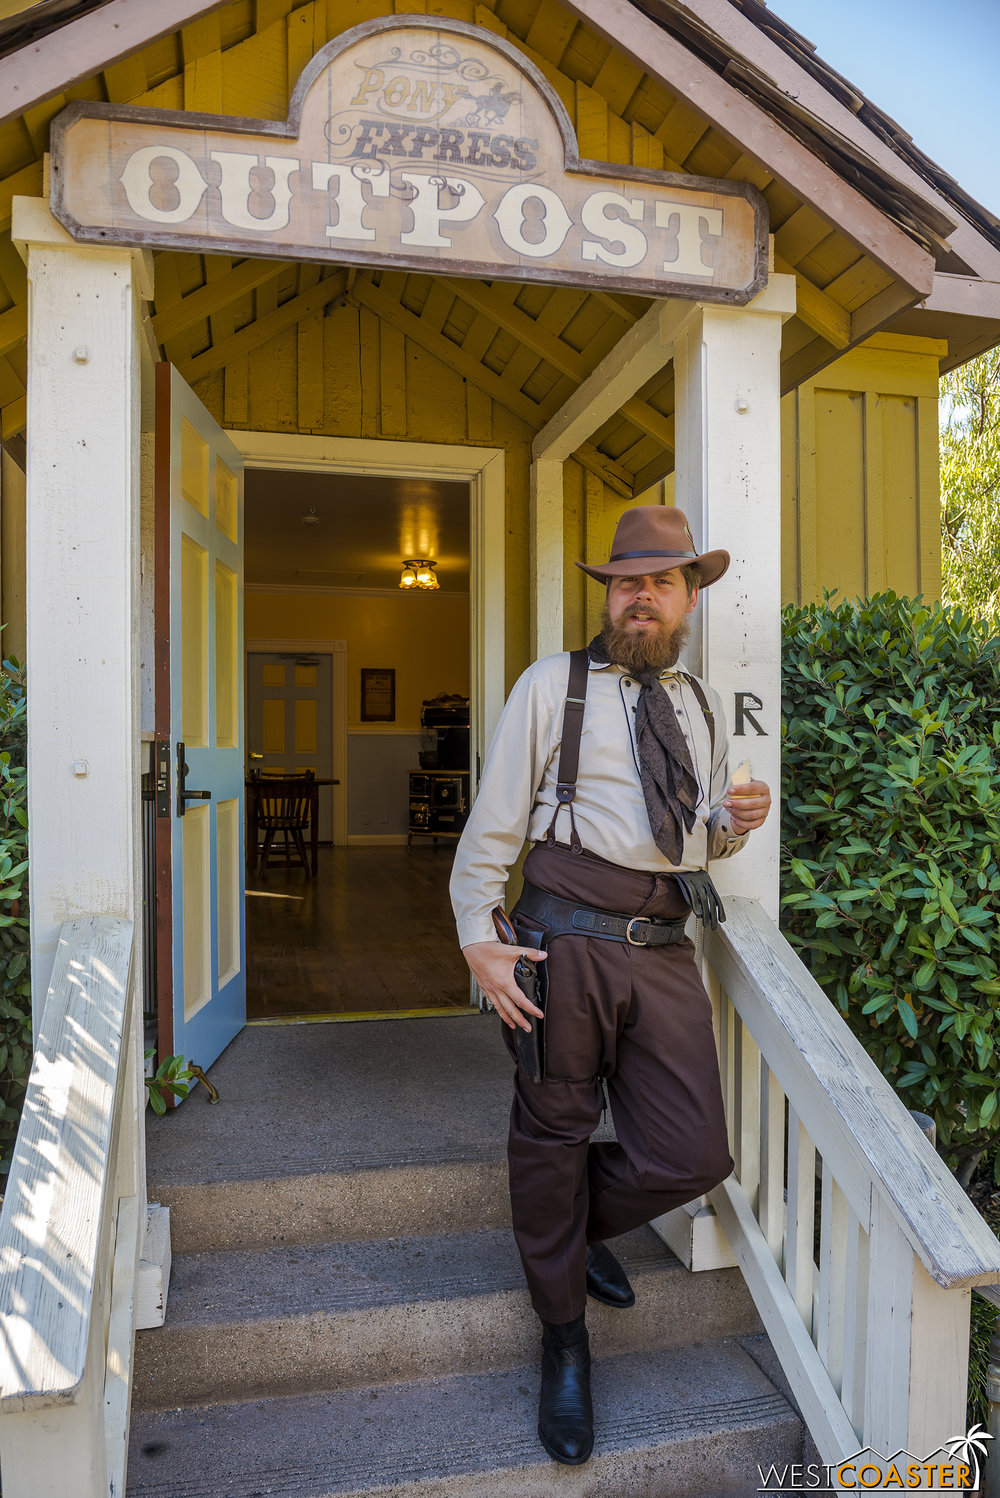 Brett Eastly also minds the new Pony Express office.